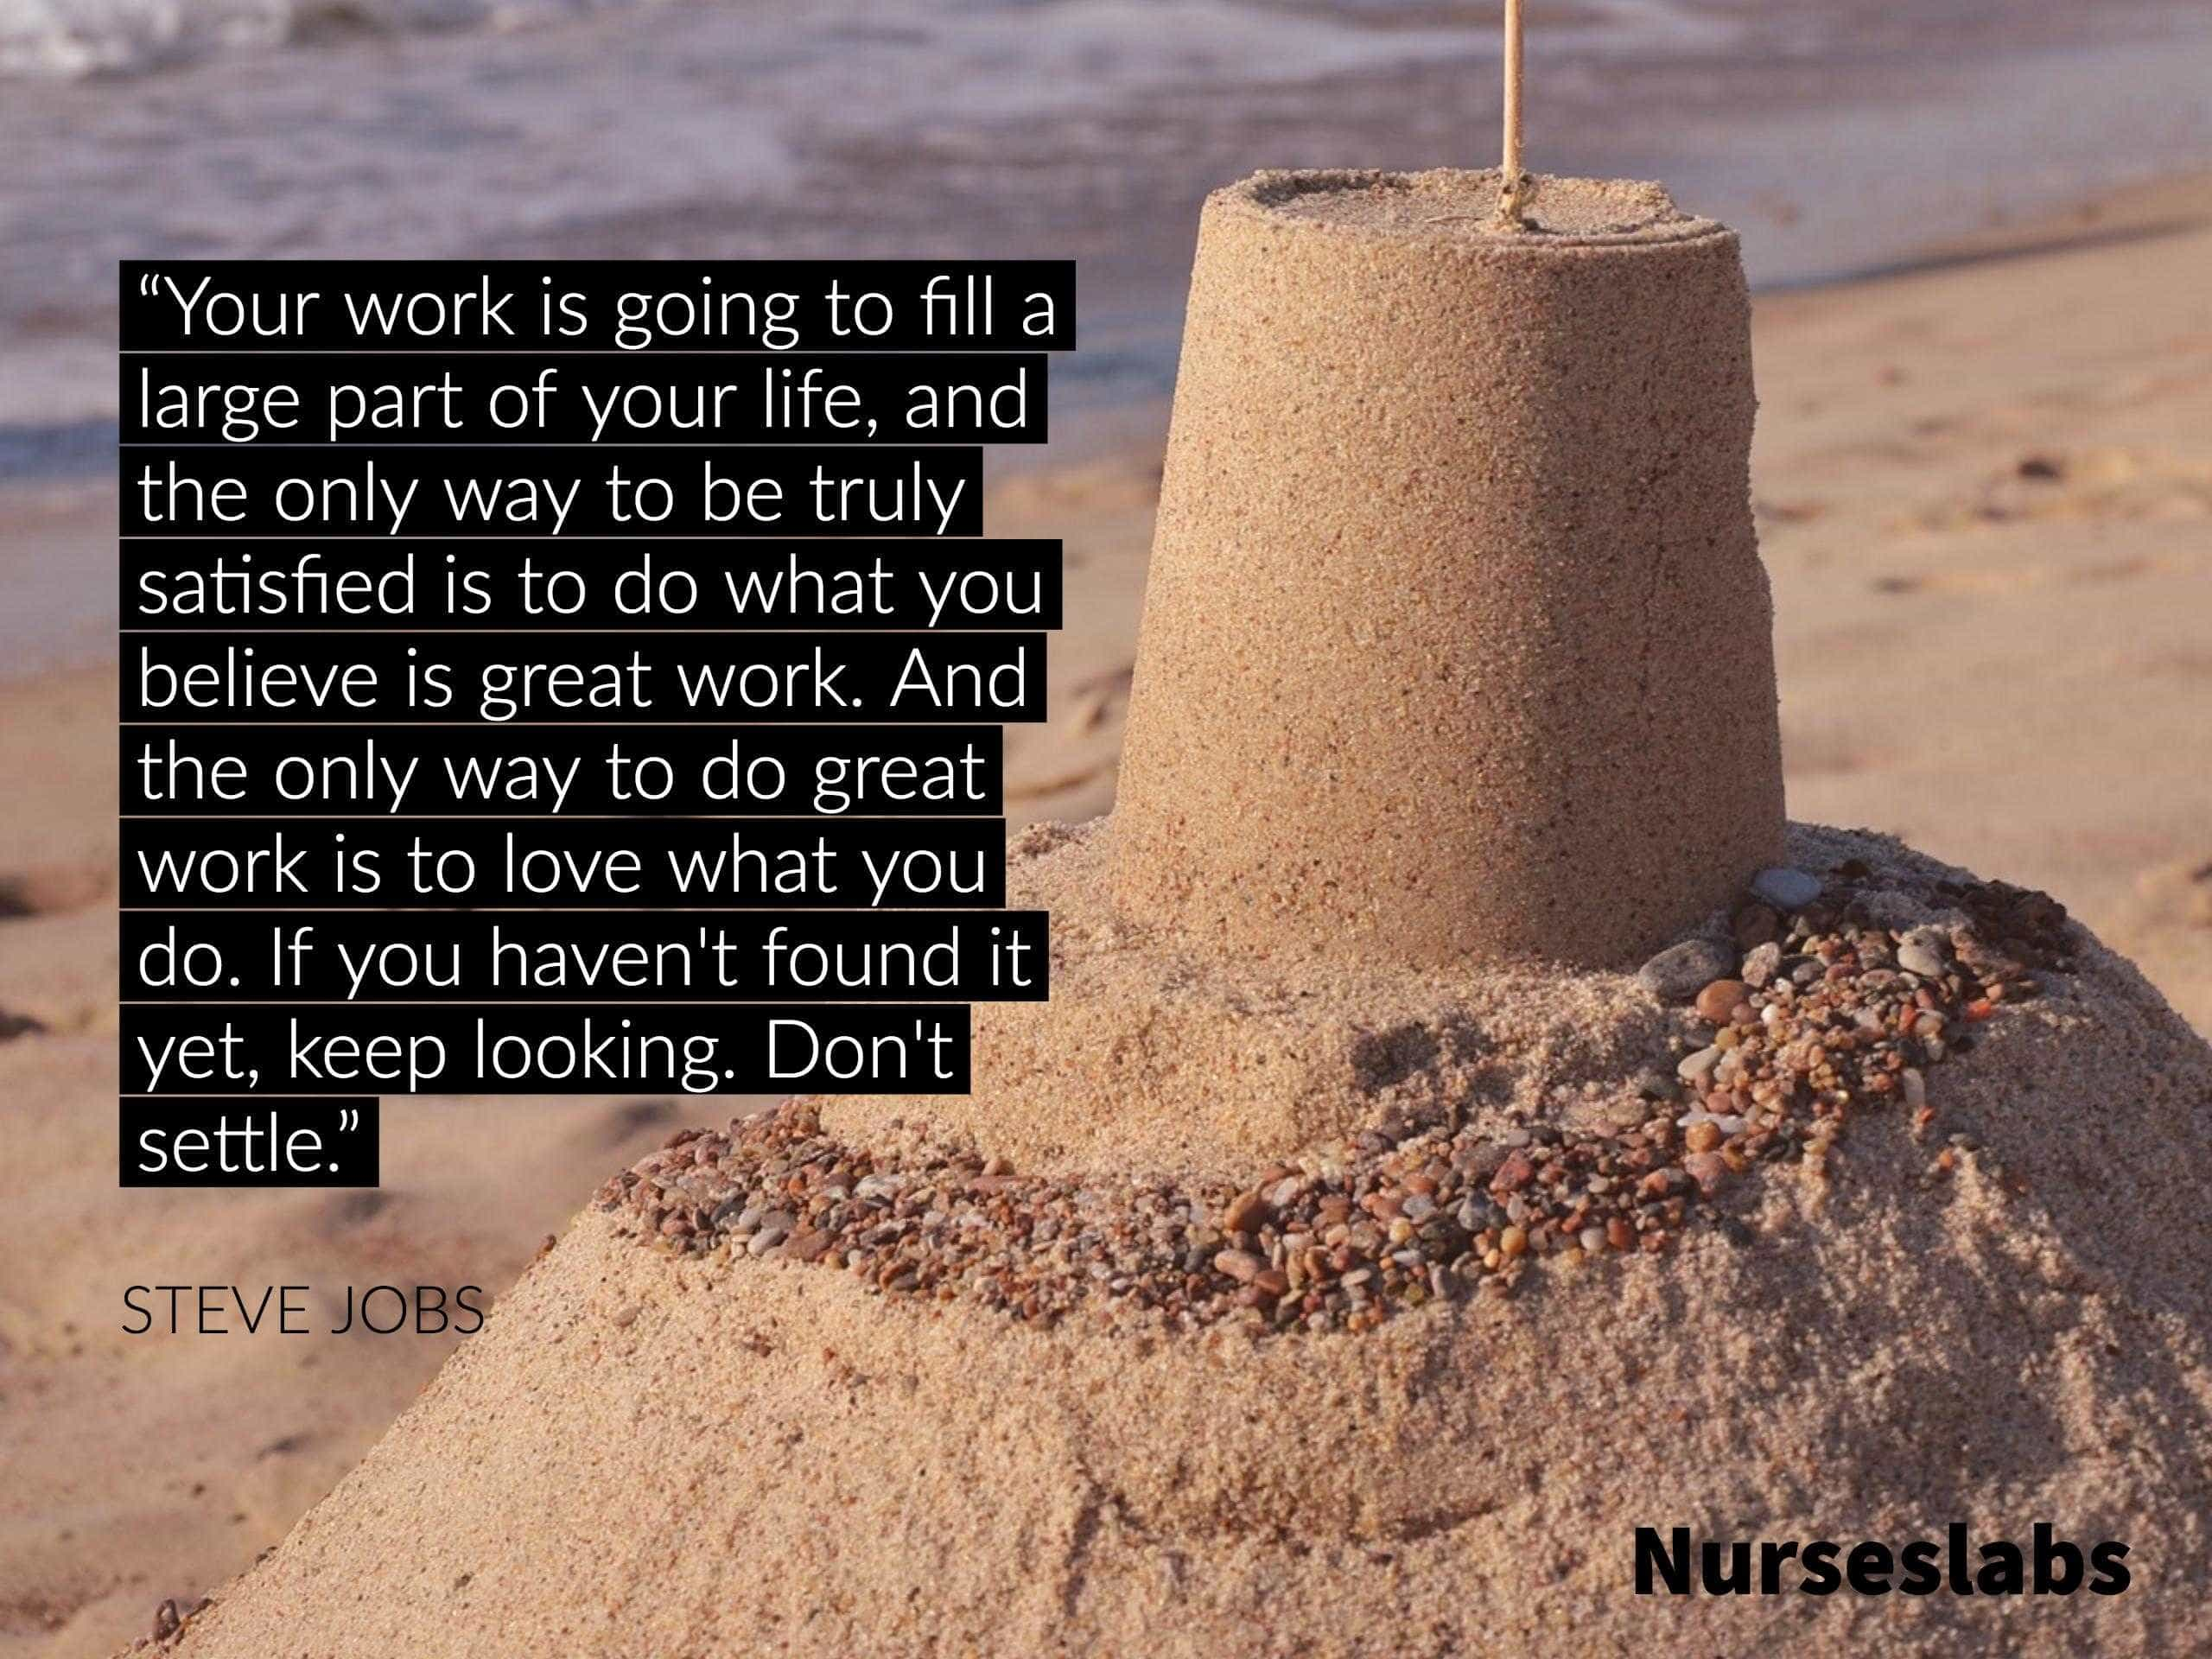 Quotes About Planting Seeds For Life 8 Inspiring Nursing Quotes To Keep You Going